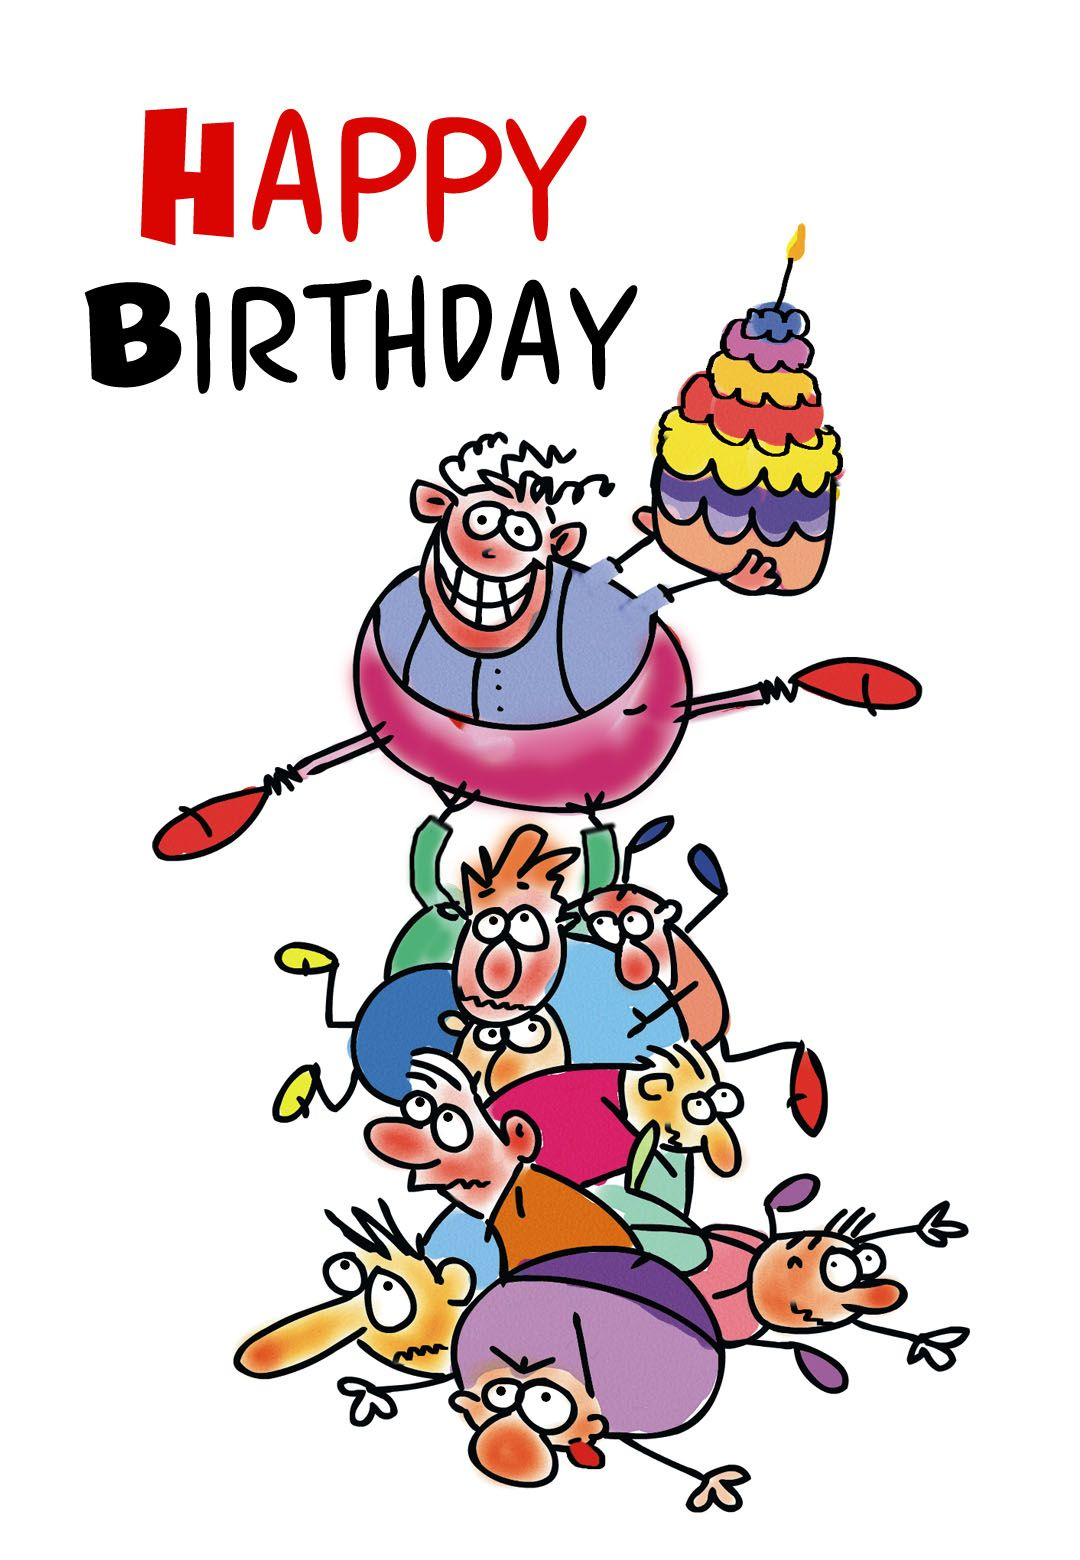 Free Printable Funny Birthday Greeting Card   Gifts To Make   Free - Free Printable Funny Birthday Cards For Coworkers